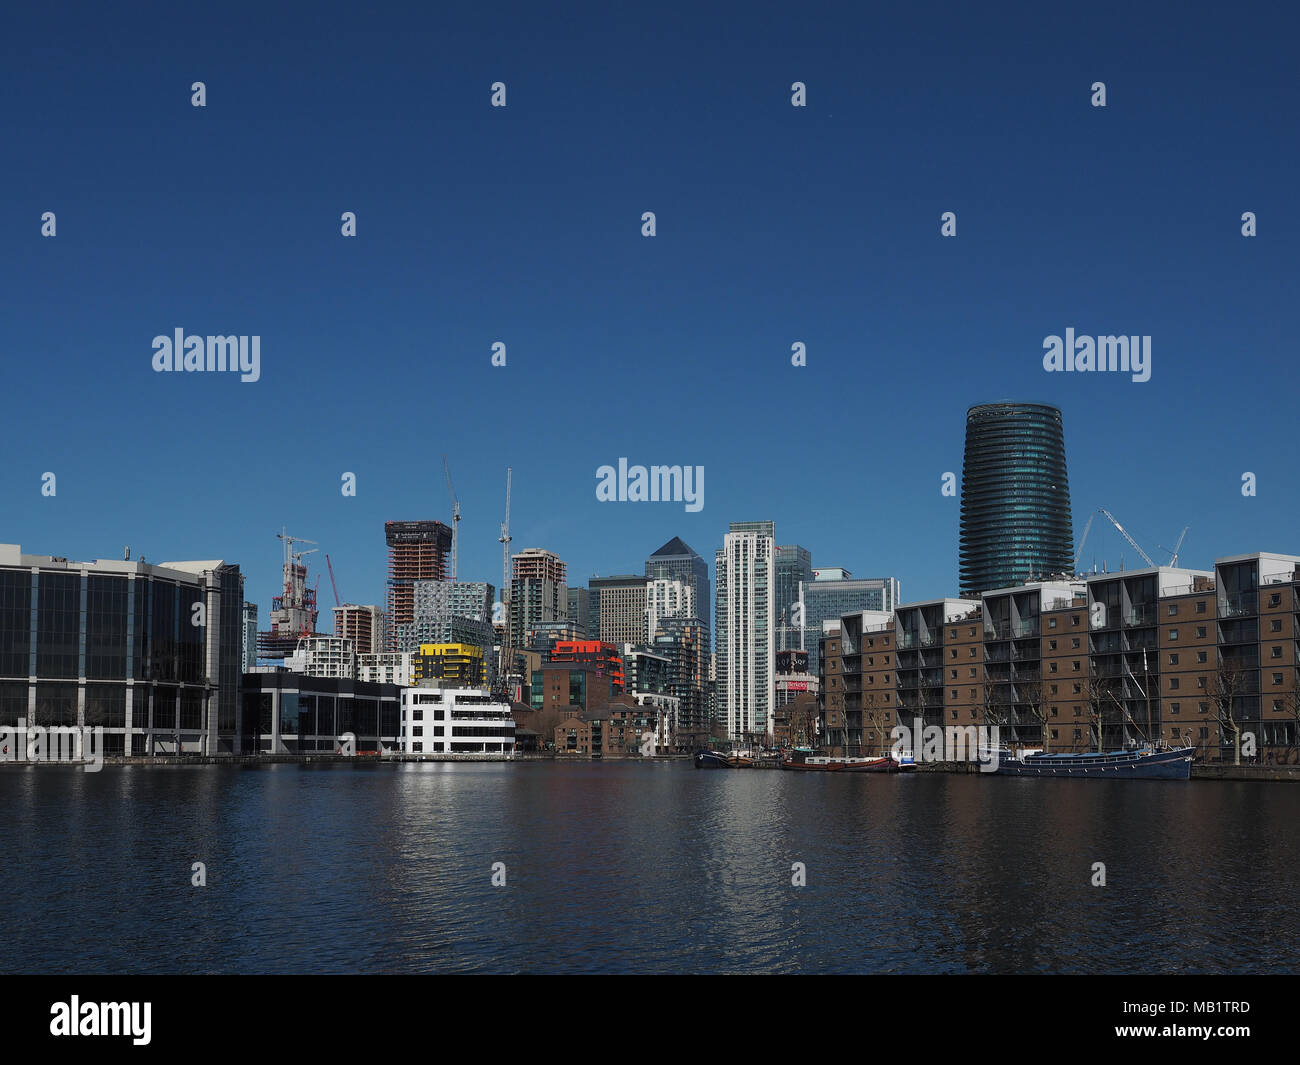 Canary Wharf on its construction sites seen from Millwall Outer Dock, London, England, UK - Stock Image